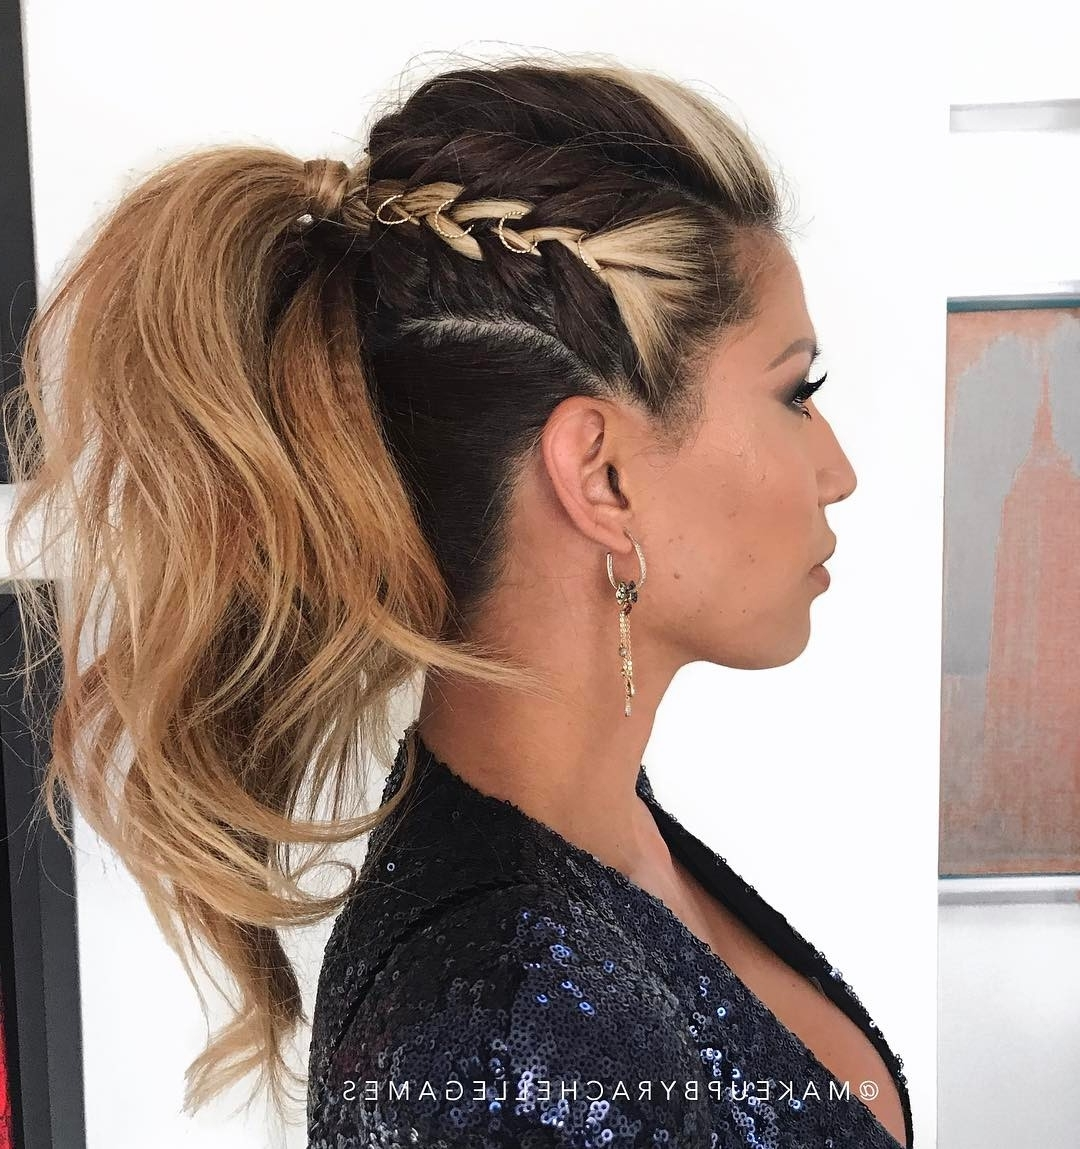 2018 High Ponytail Hairstyles Intended For 10 Ponytail Hairstyles – Pretty, Posh, Playful & Vintage Looks You (View 10 of 20)